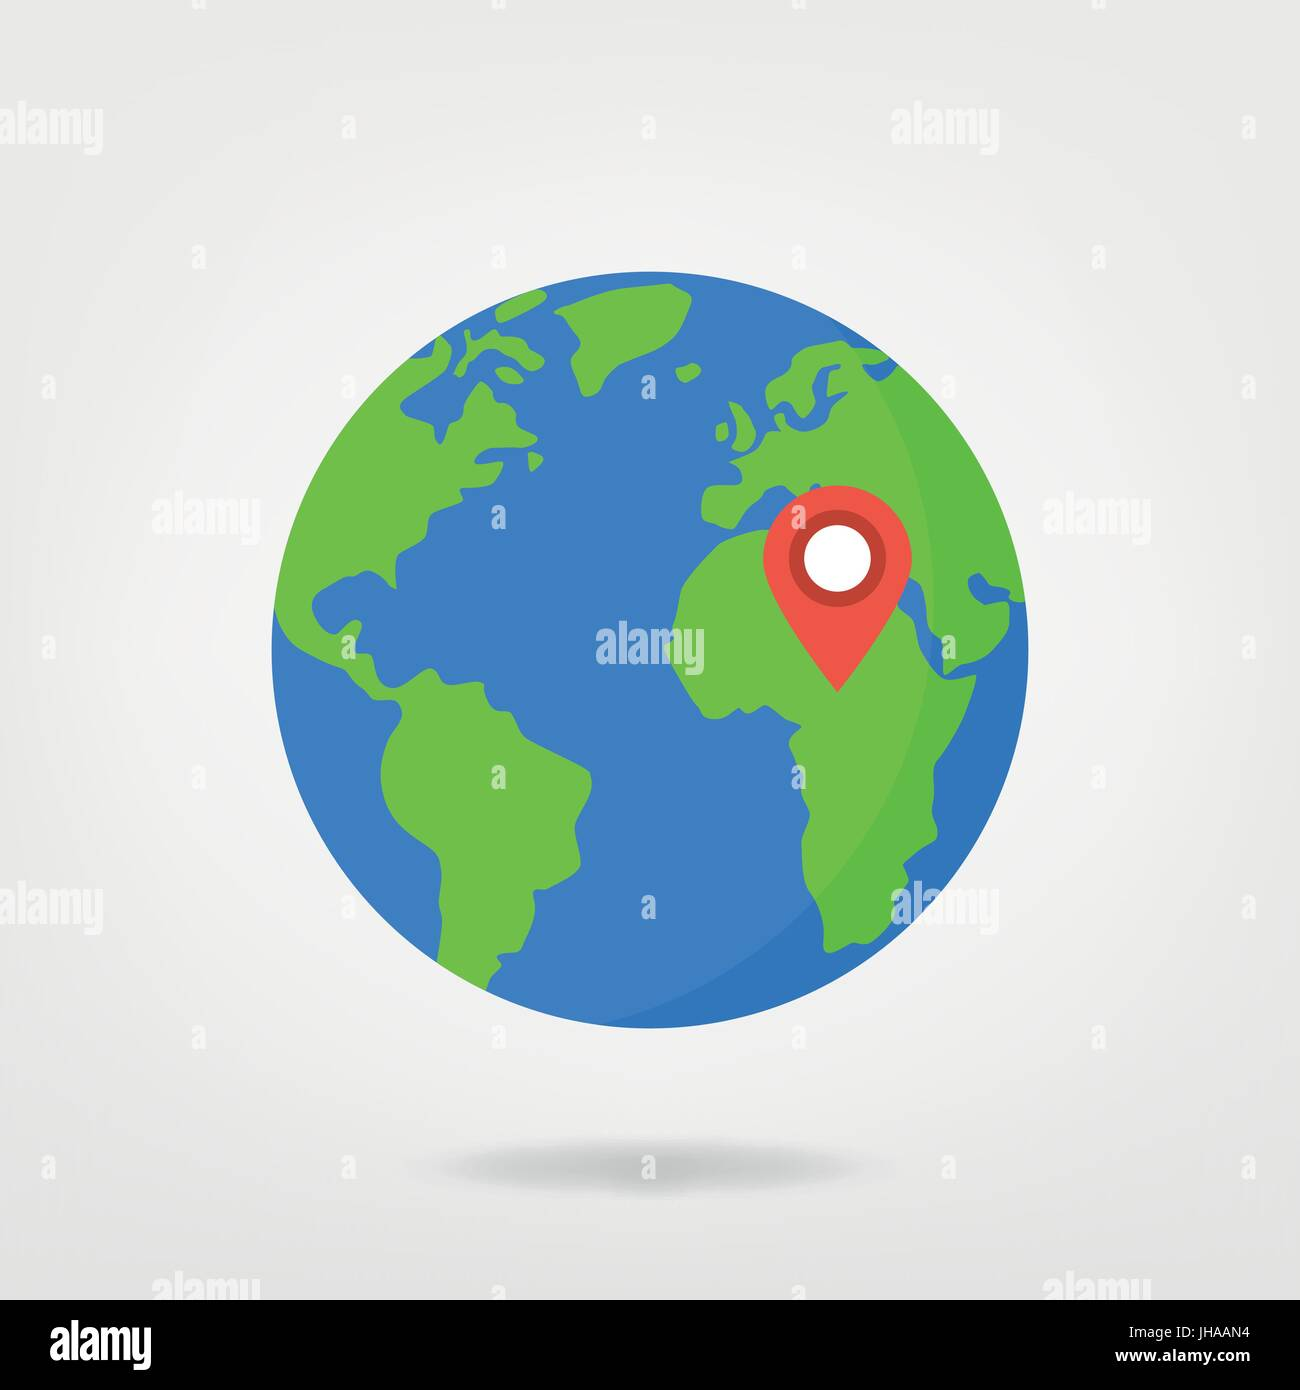 Africa location pin on world illustration world map globe africa location pin on world illustration world map globe with red location marker gumiabroncs Choice Image